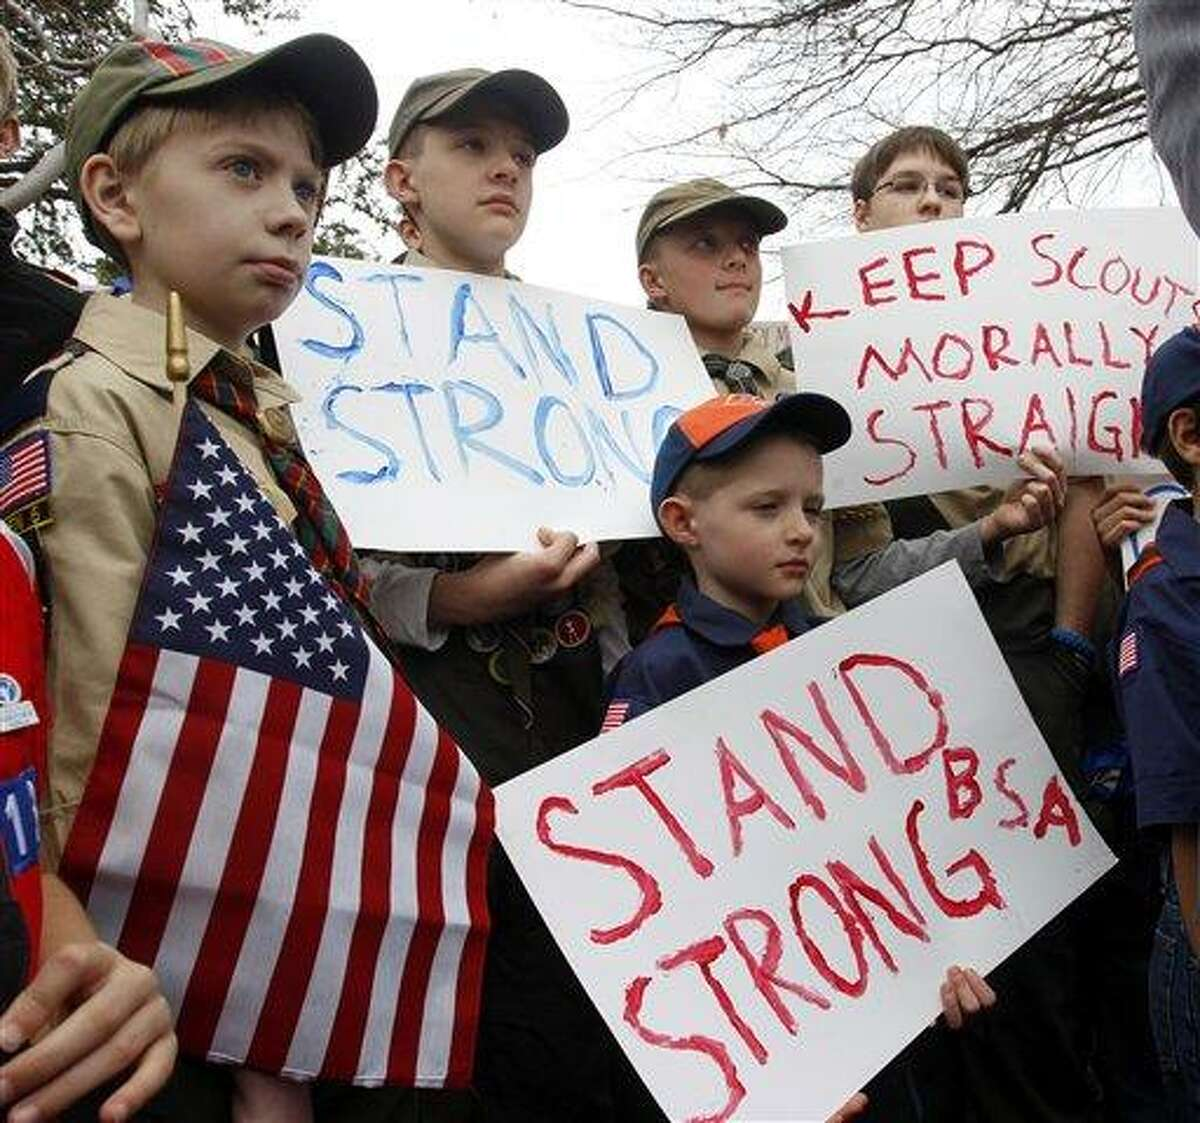 Clockwise from left, Boy Scouts Eric Kusterer, Jacob Sorah, James Sorah, Micah Brownlee and Cub Scout John Sorah hold signs at the